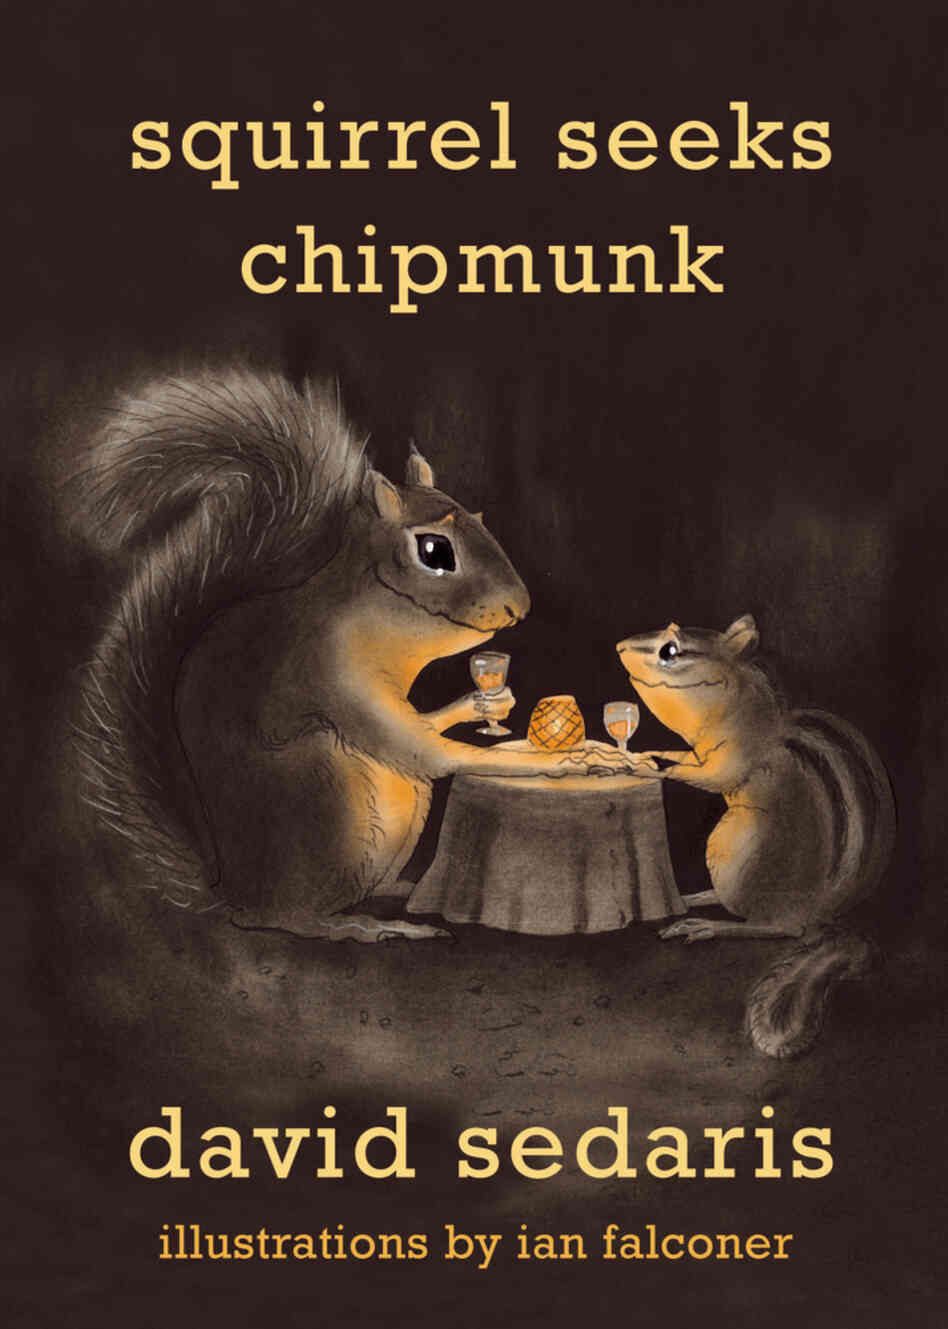 Squirrel Seeks Chipmunk